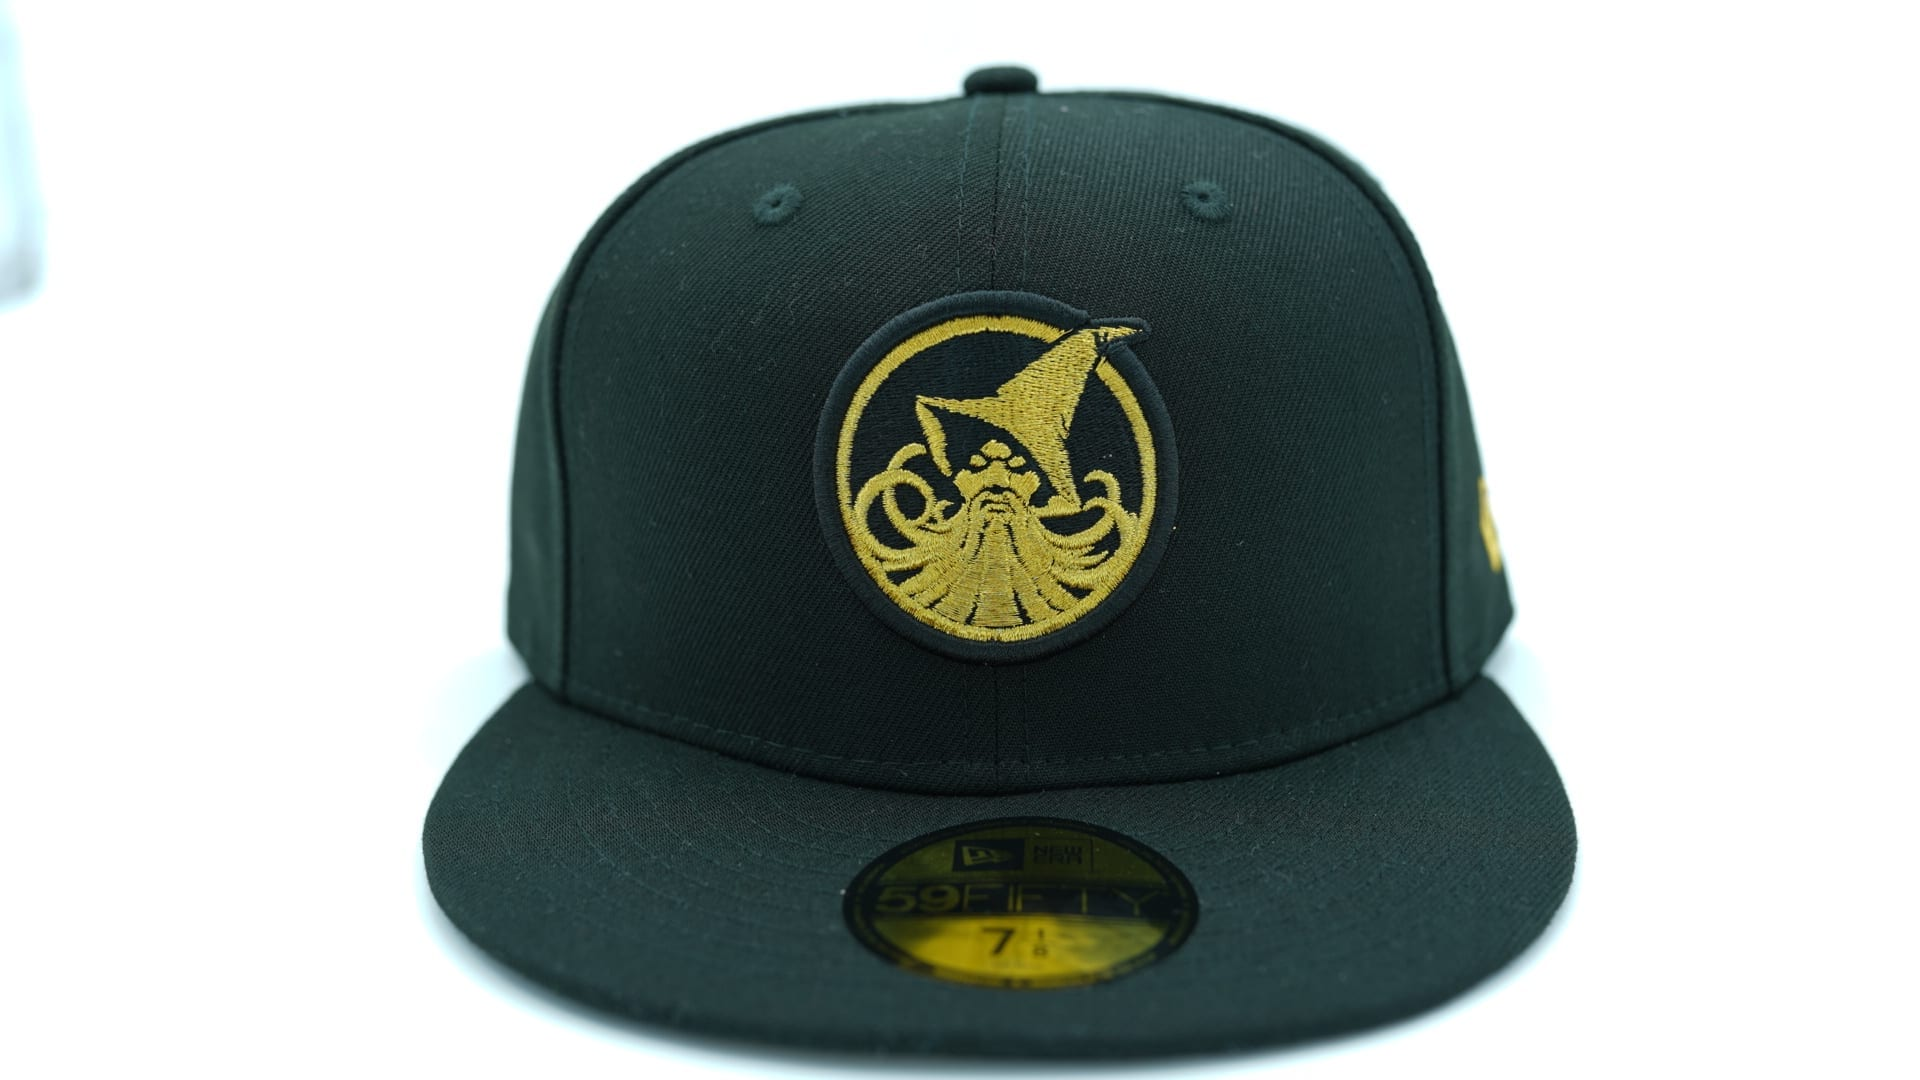 3ecf4bc4e21 47 Brand Strictly Eds. Blank 47 Brand Hats ...